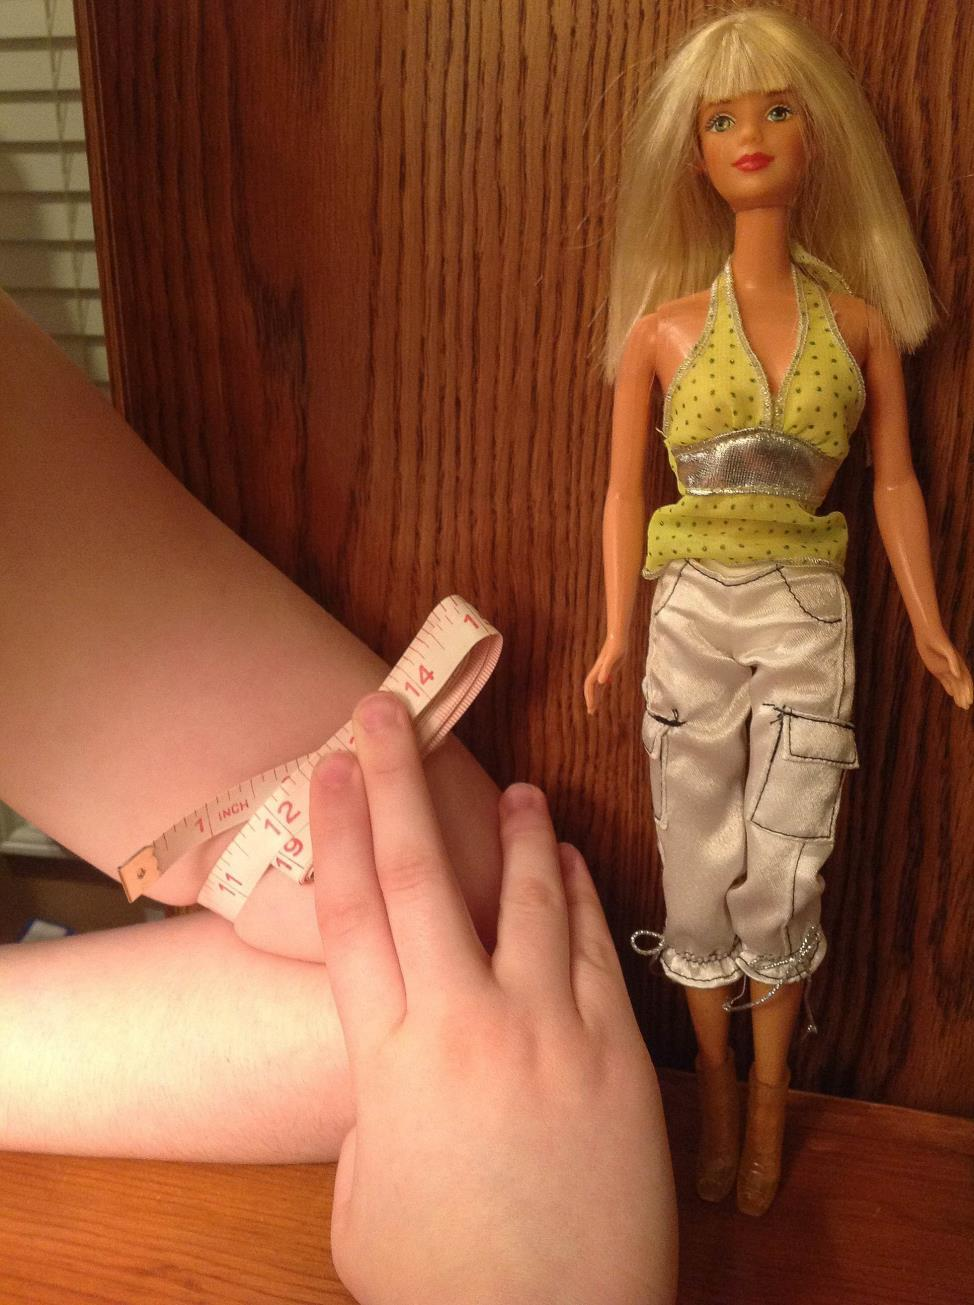 The Barbie doll, with its unrealistic proportions, has been accused of promoting harmful body-image stereotypes among girls.